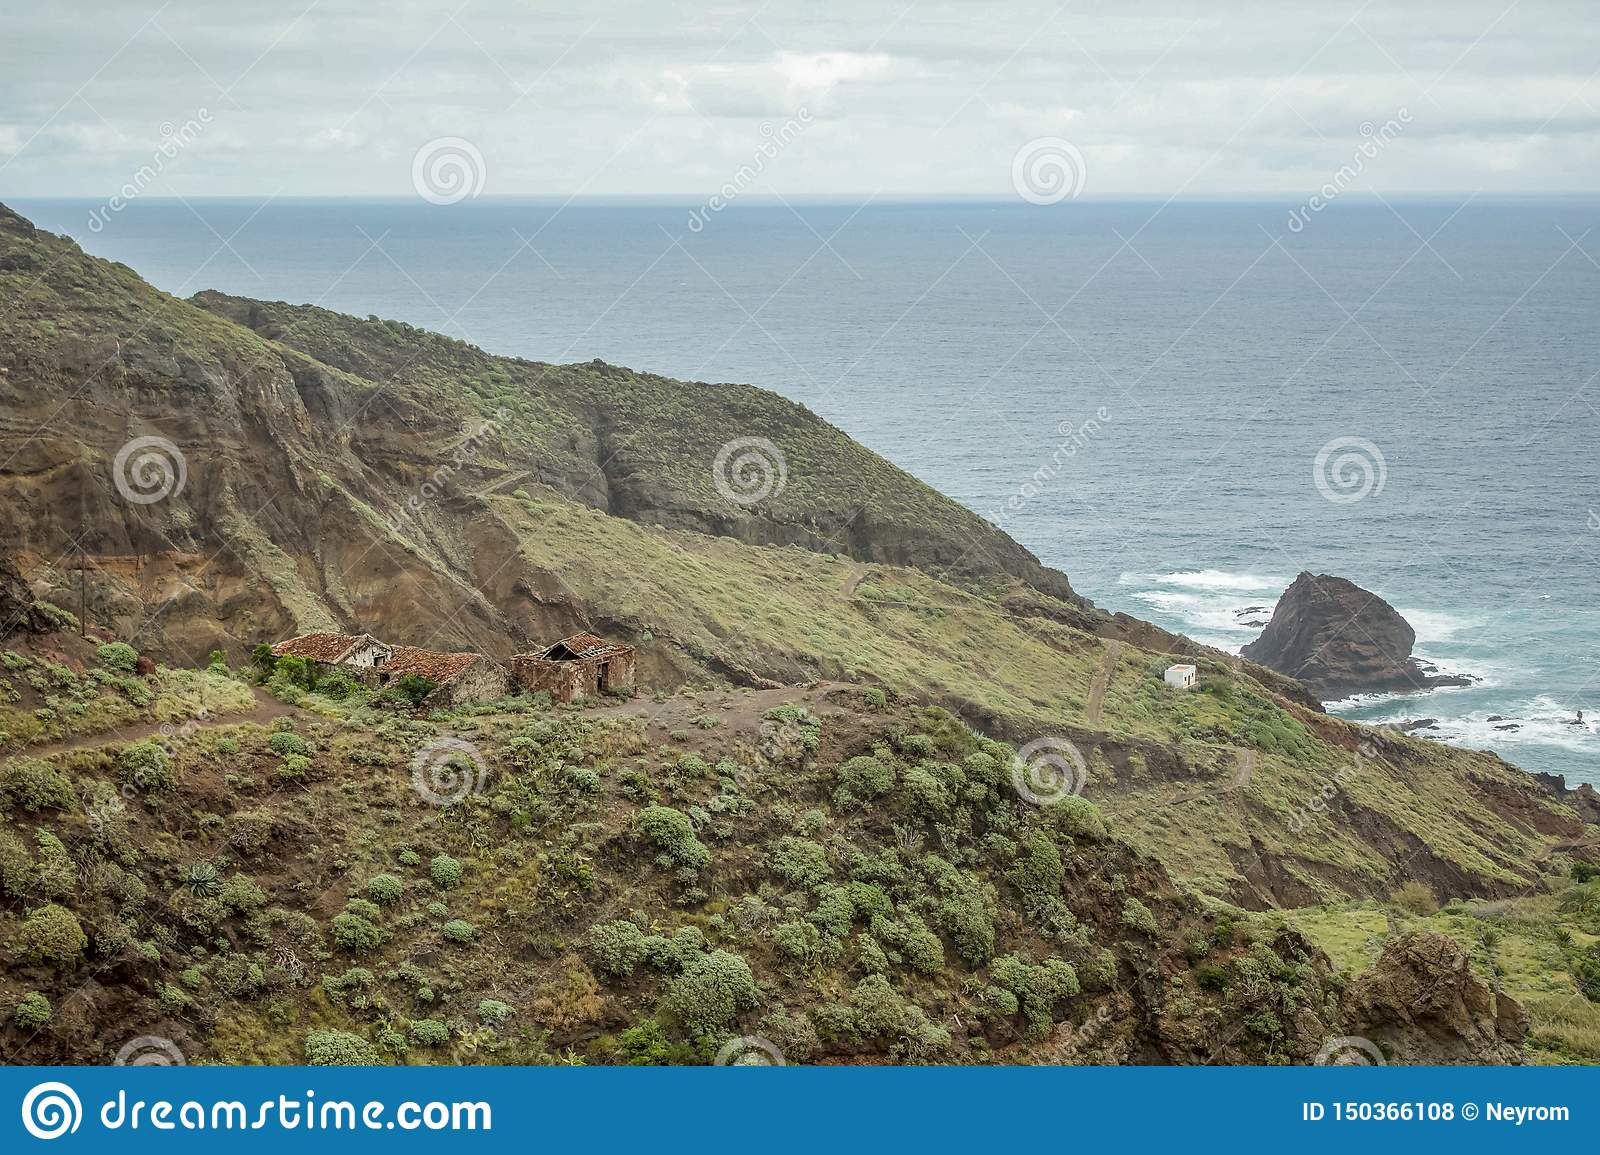 Steep high lava rock cliffs on on the east of Tenerife. Solitary rocks sticking out of the water. Old abandoned huts. Blue sea